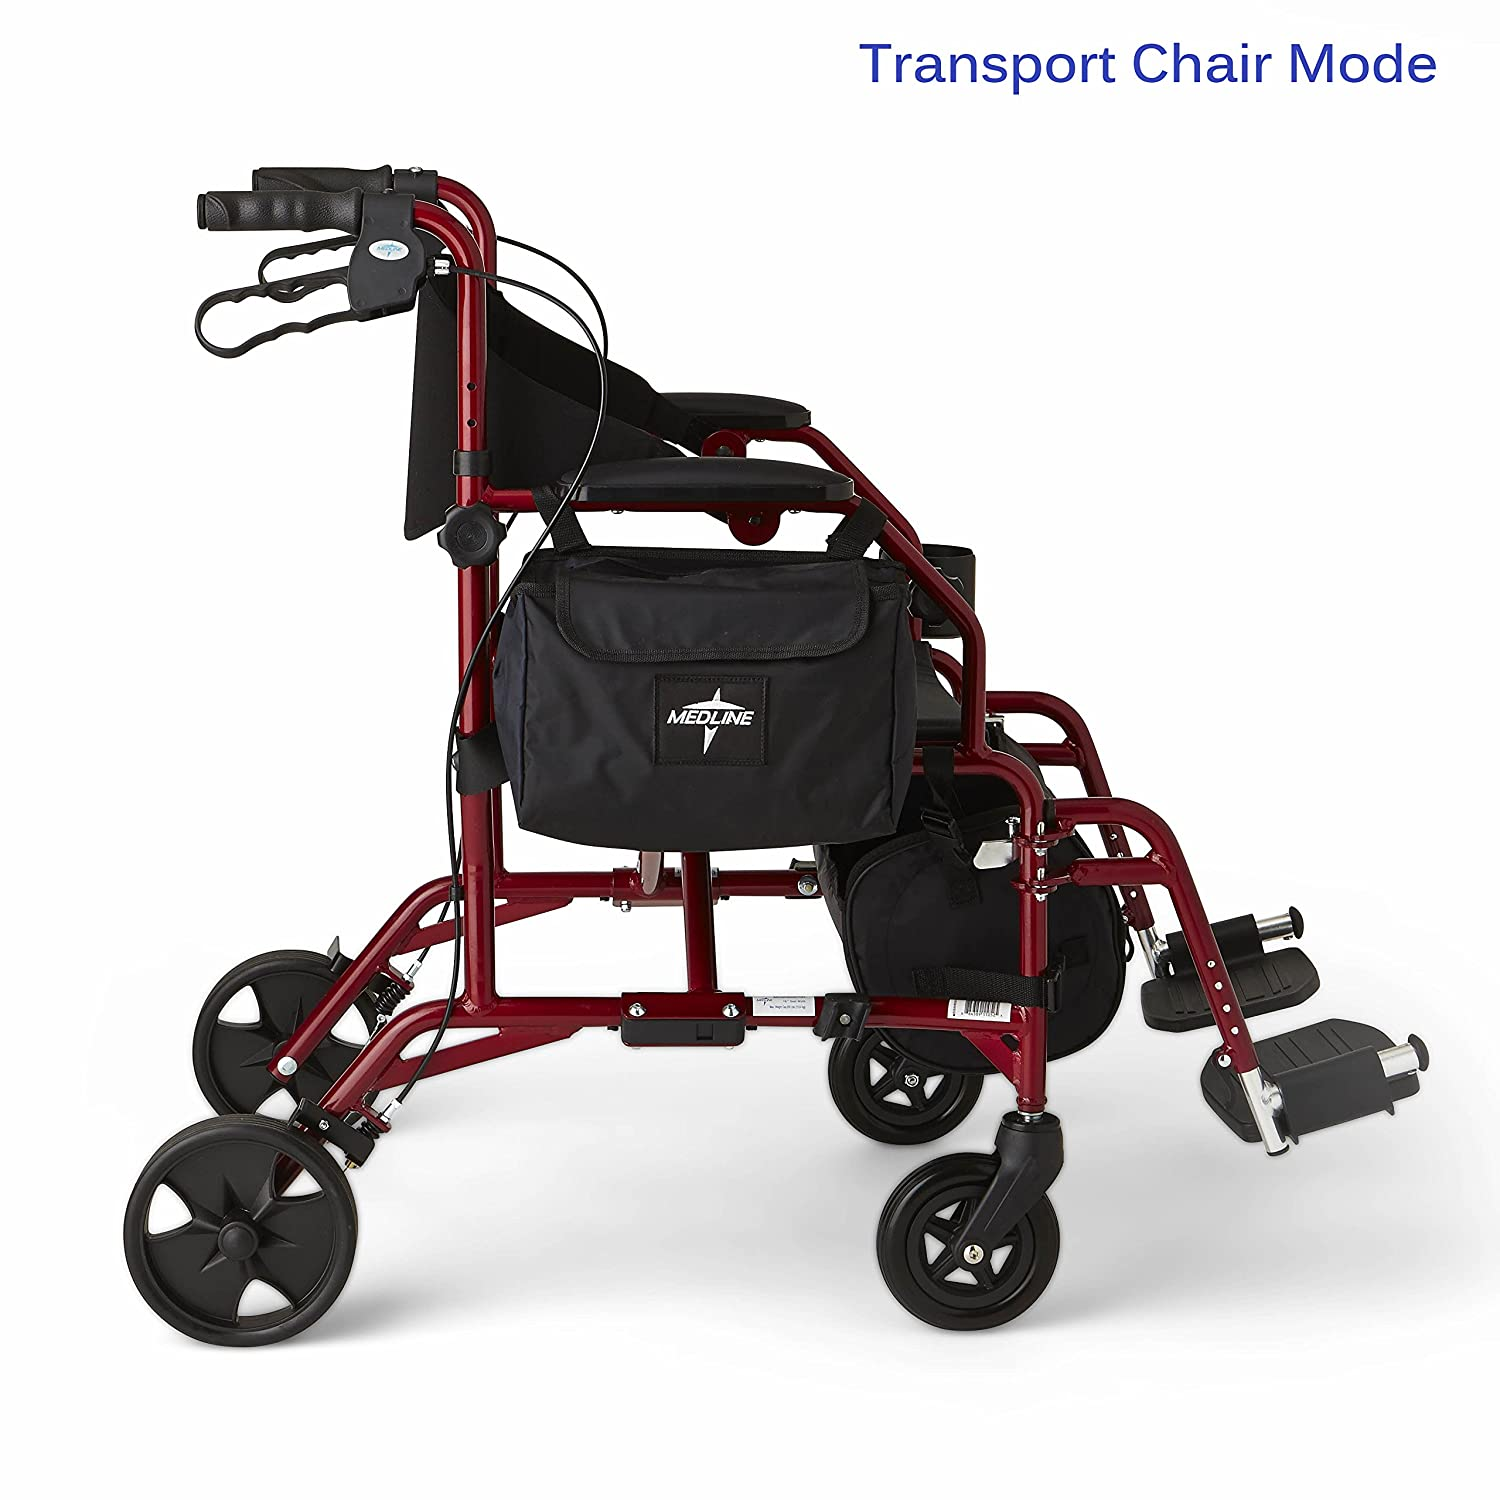 Transport chair amazon - Amazon Com Medline Red Combination Rollator And Transport Chair Desk Length Arms Swing Away Footrests Red Frame Health Personal Care